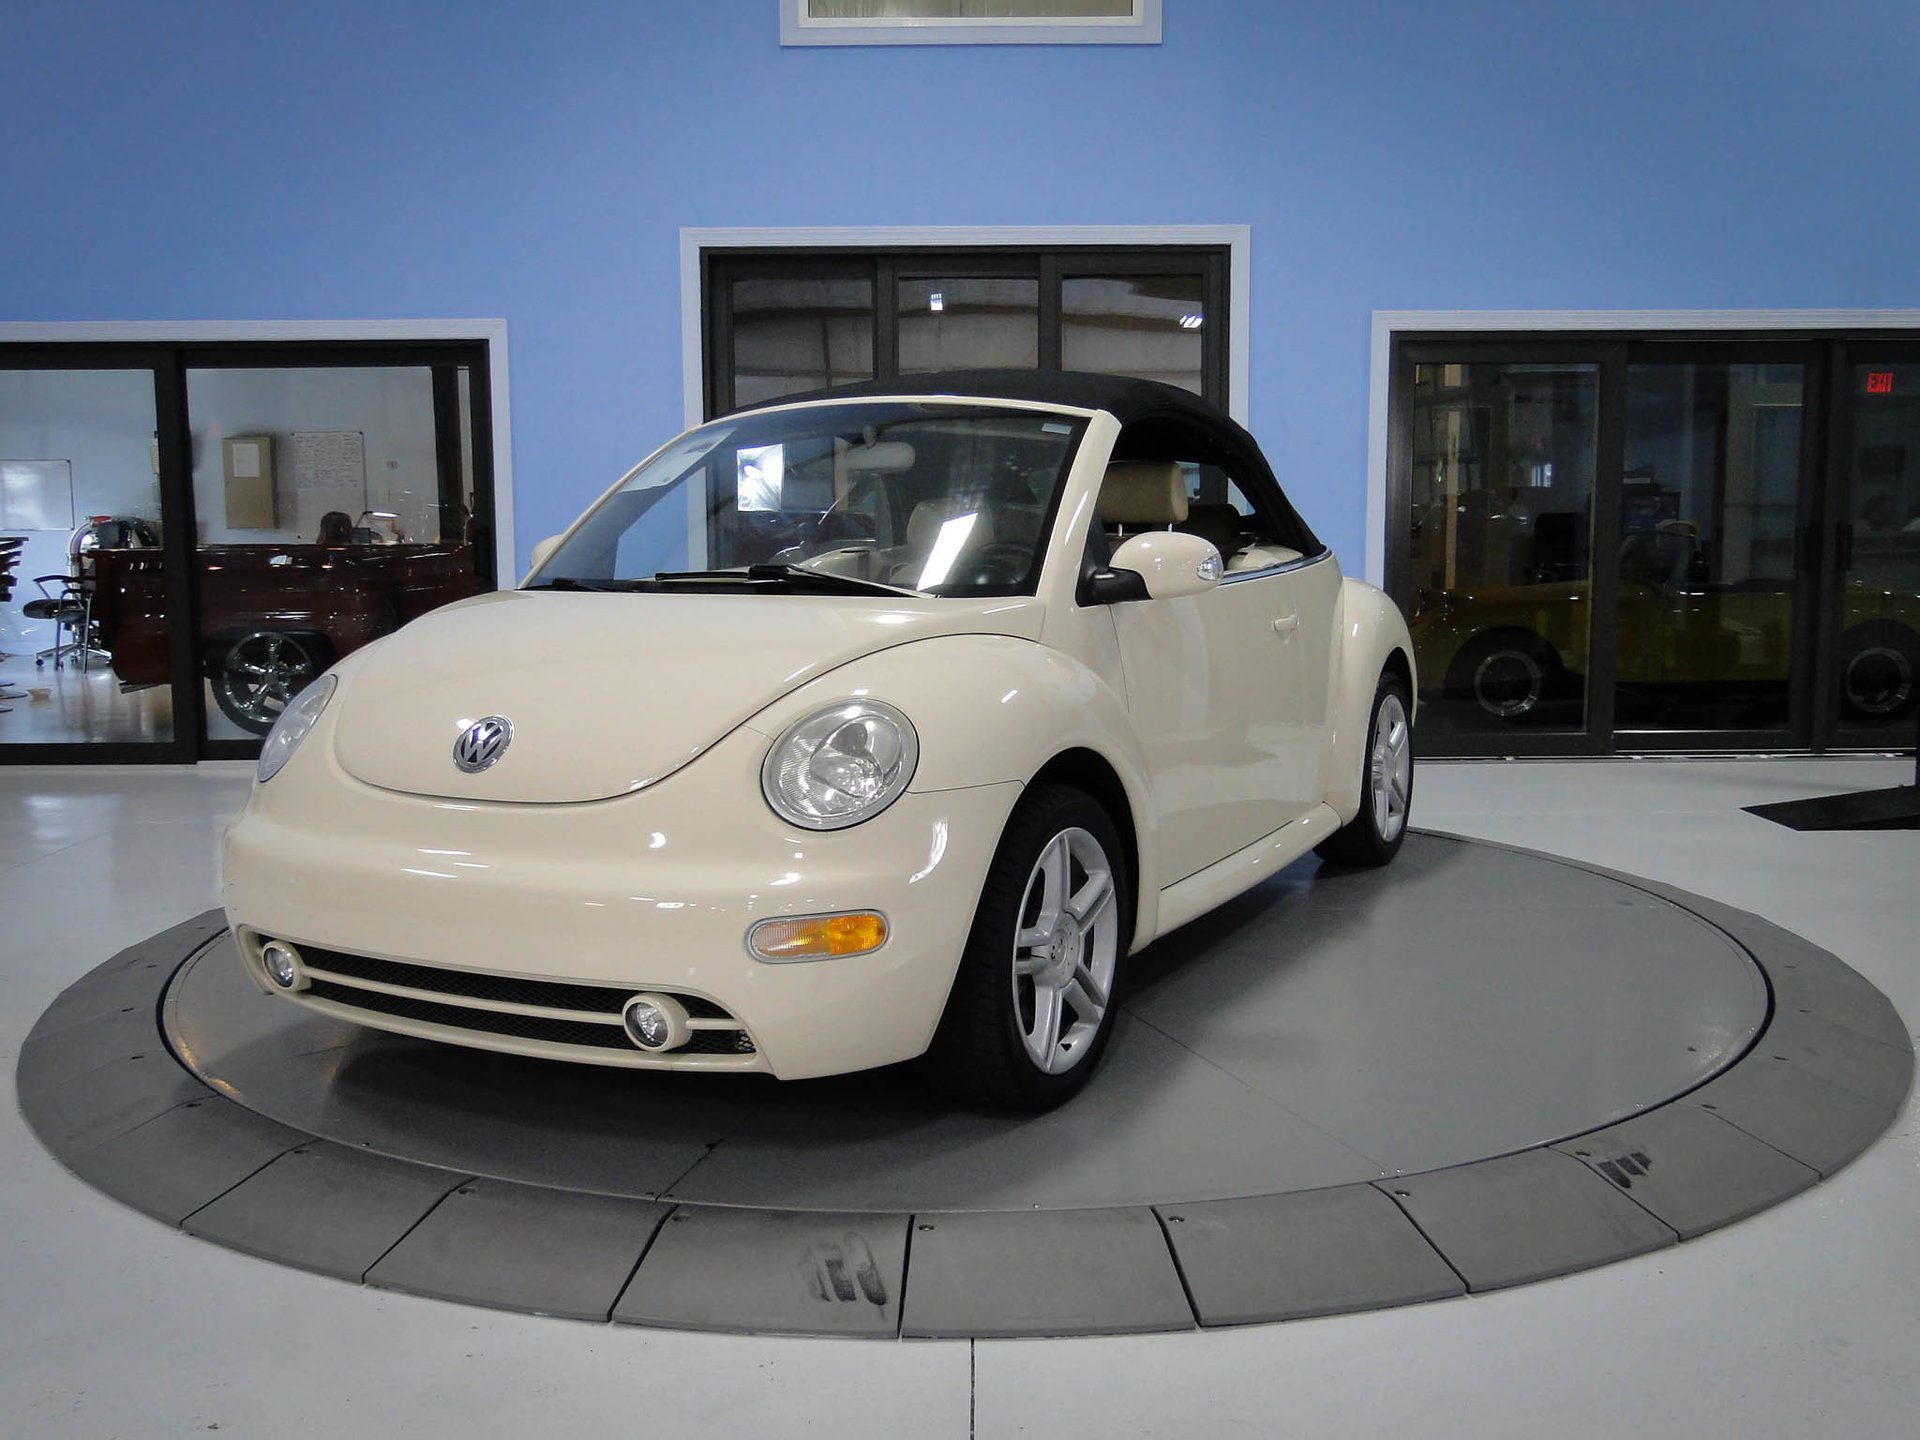 2004 volkswagen beetle classic cars used cars for sale in tampa fl. Black Bedroom Furniture Sets. Home Design Ideas